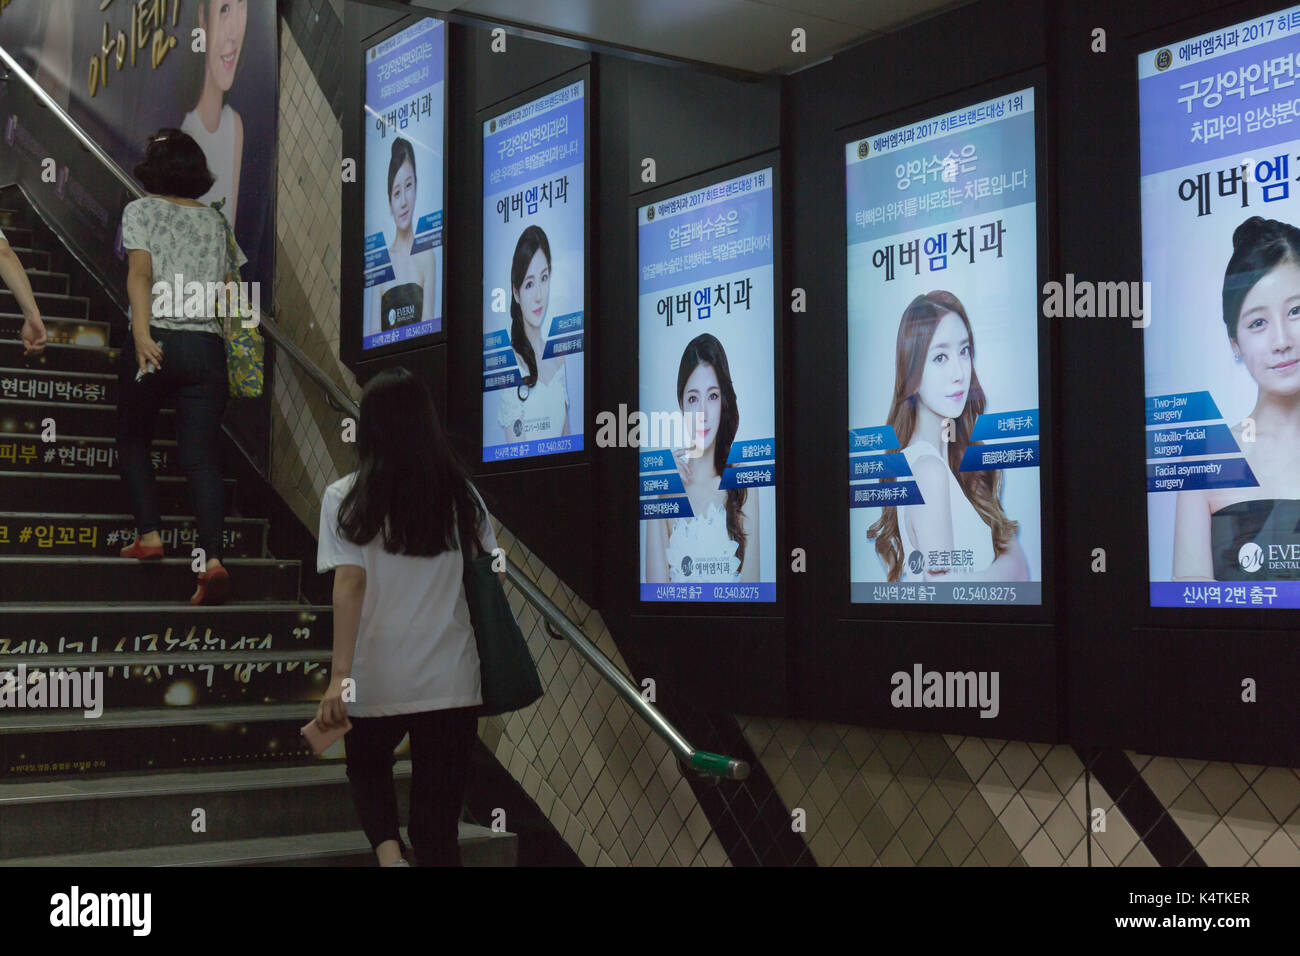 Plastic surgery clinic ads fill the wall and stairs at the subway station of Sinsa in Seoul, South Korea. - Stock Image